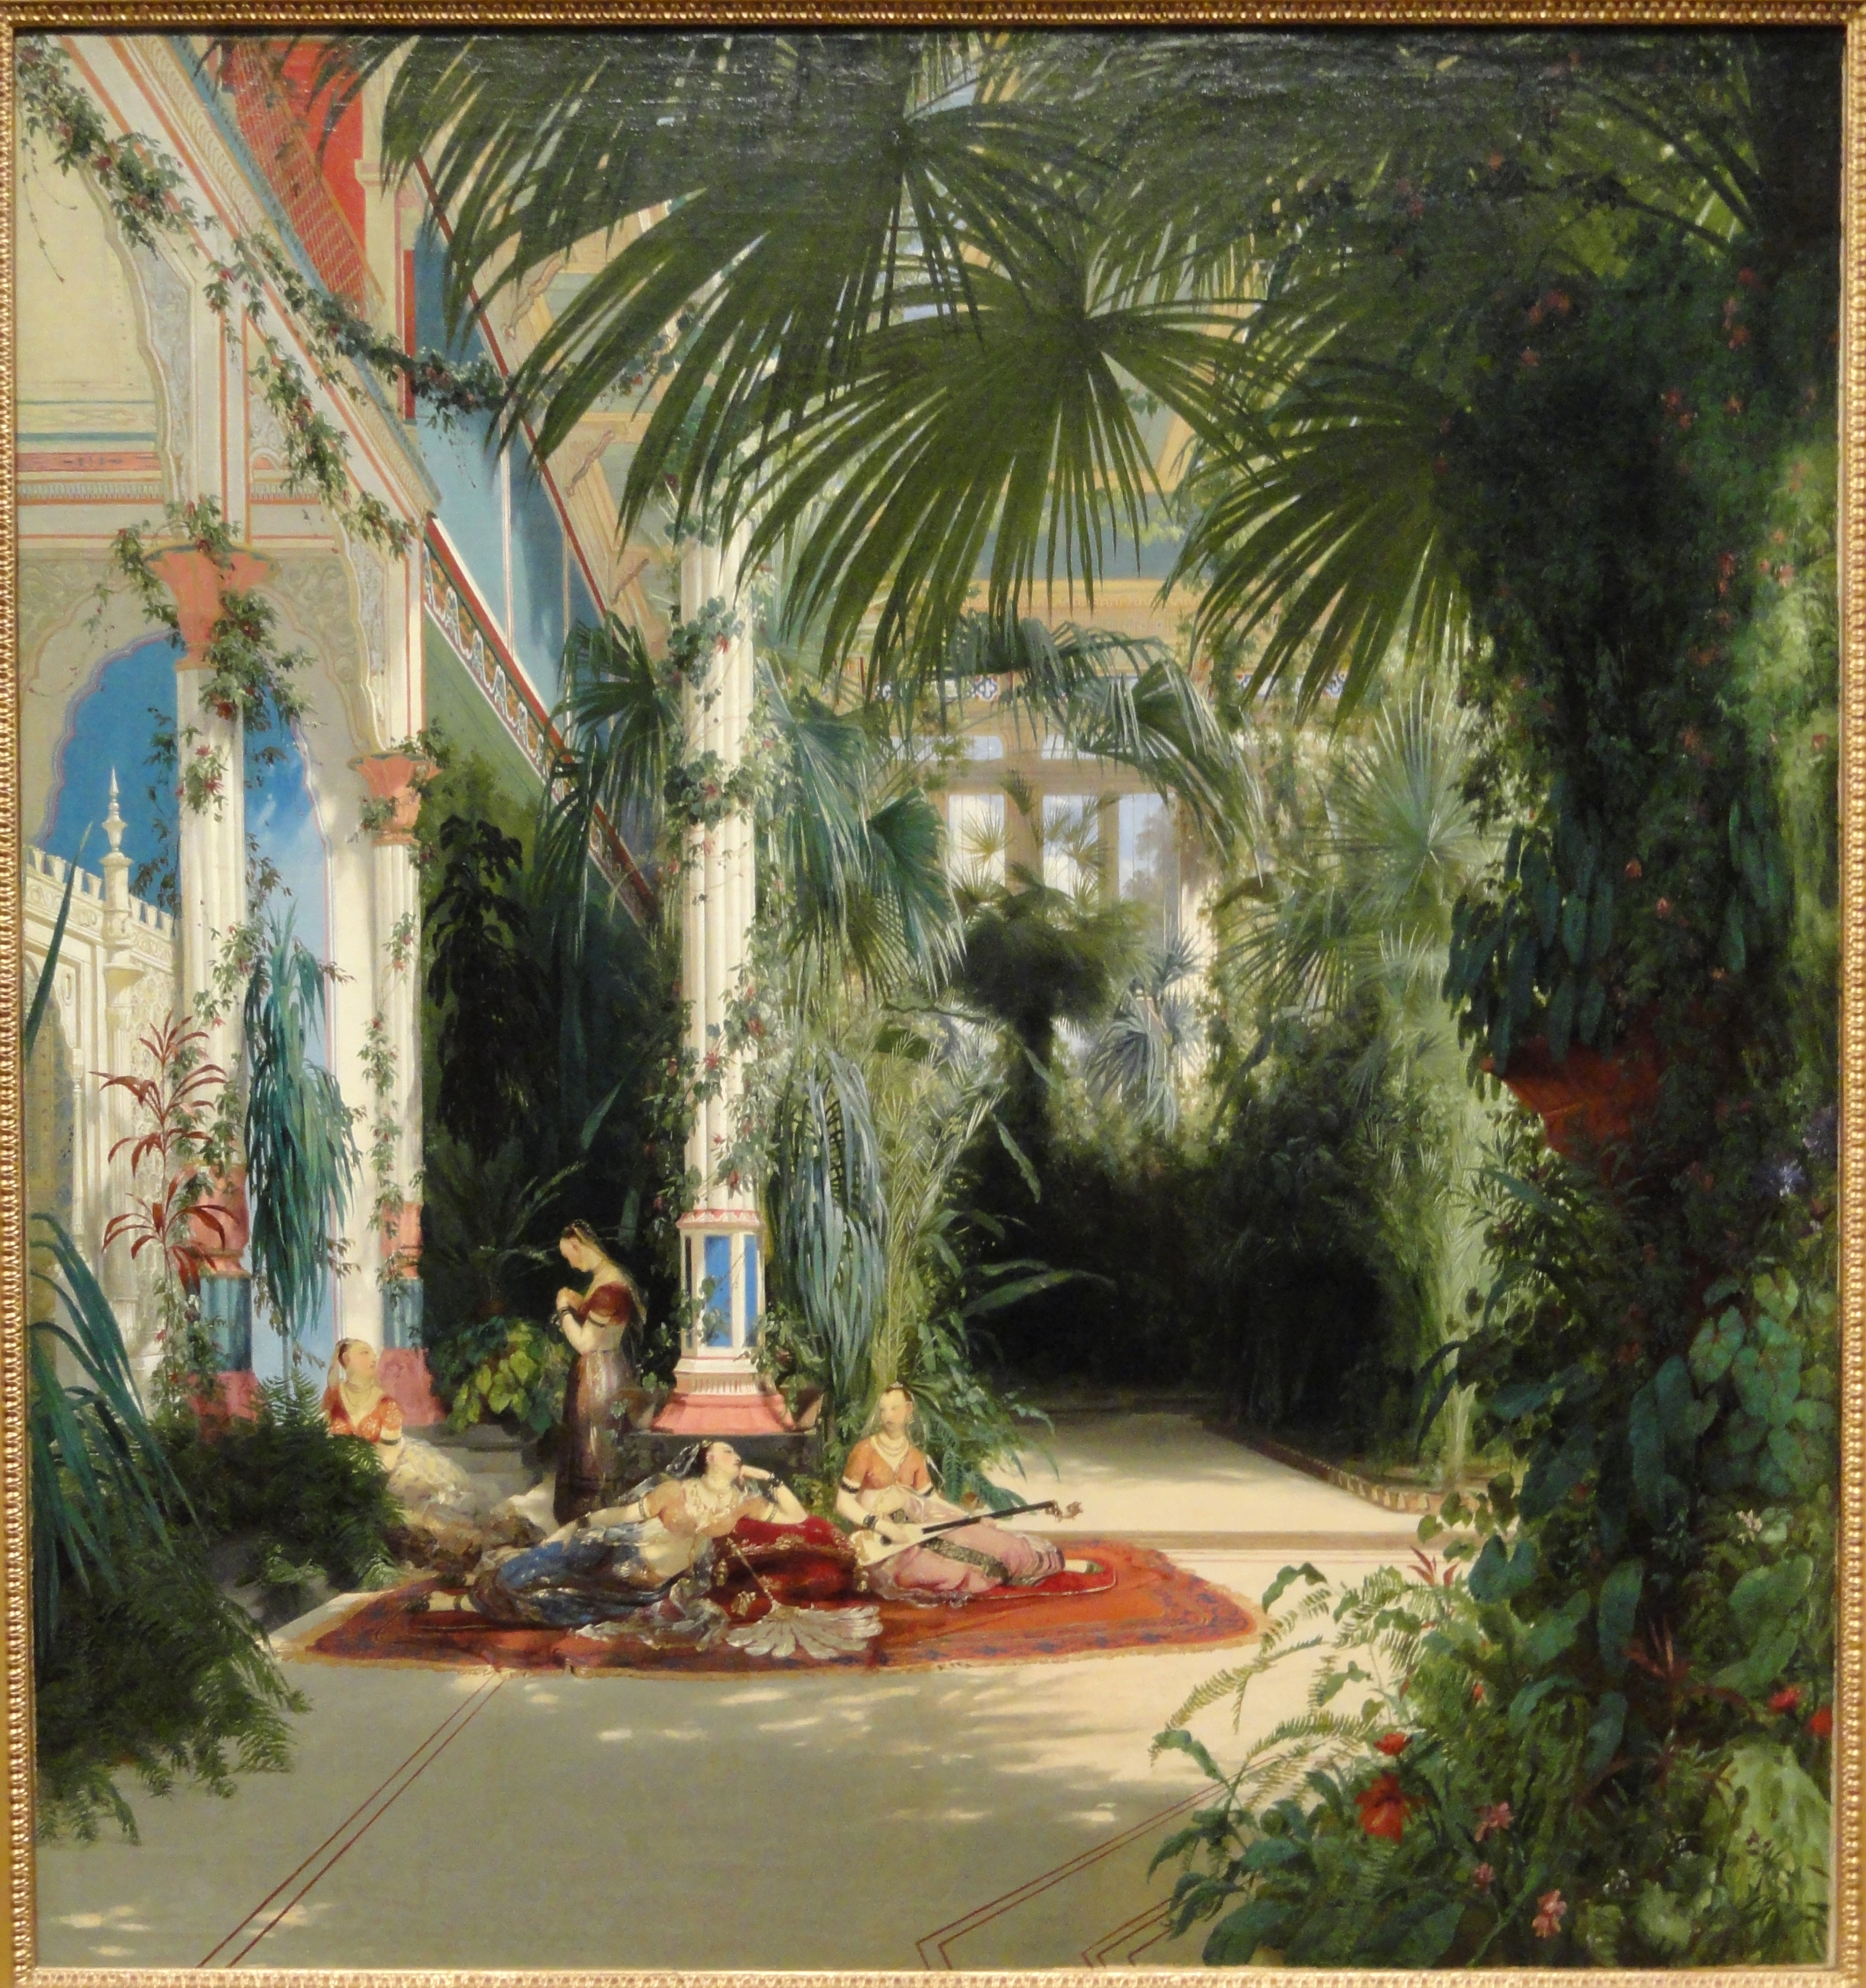 FileThe Interior Of The Palm House On The Pfaueninsel